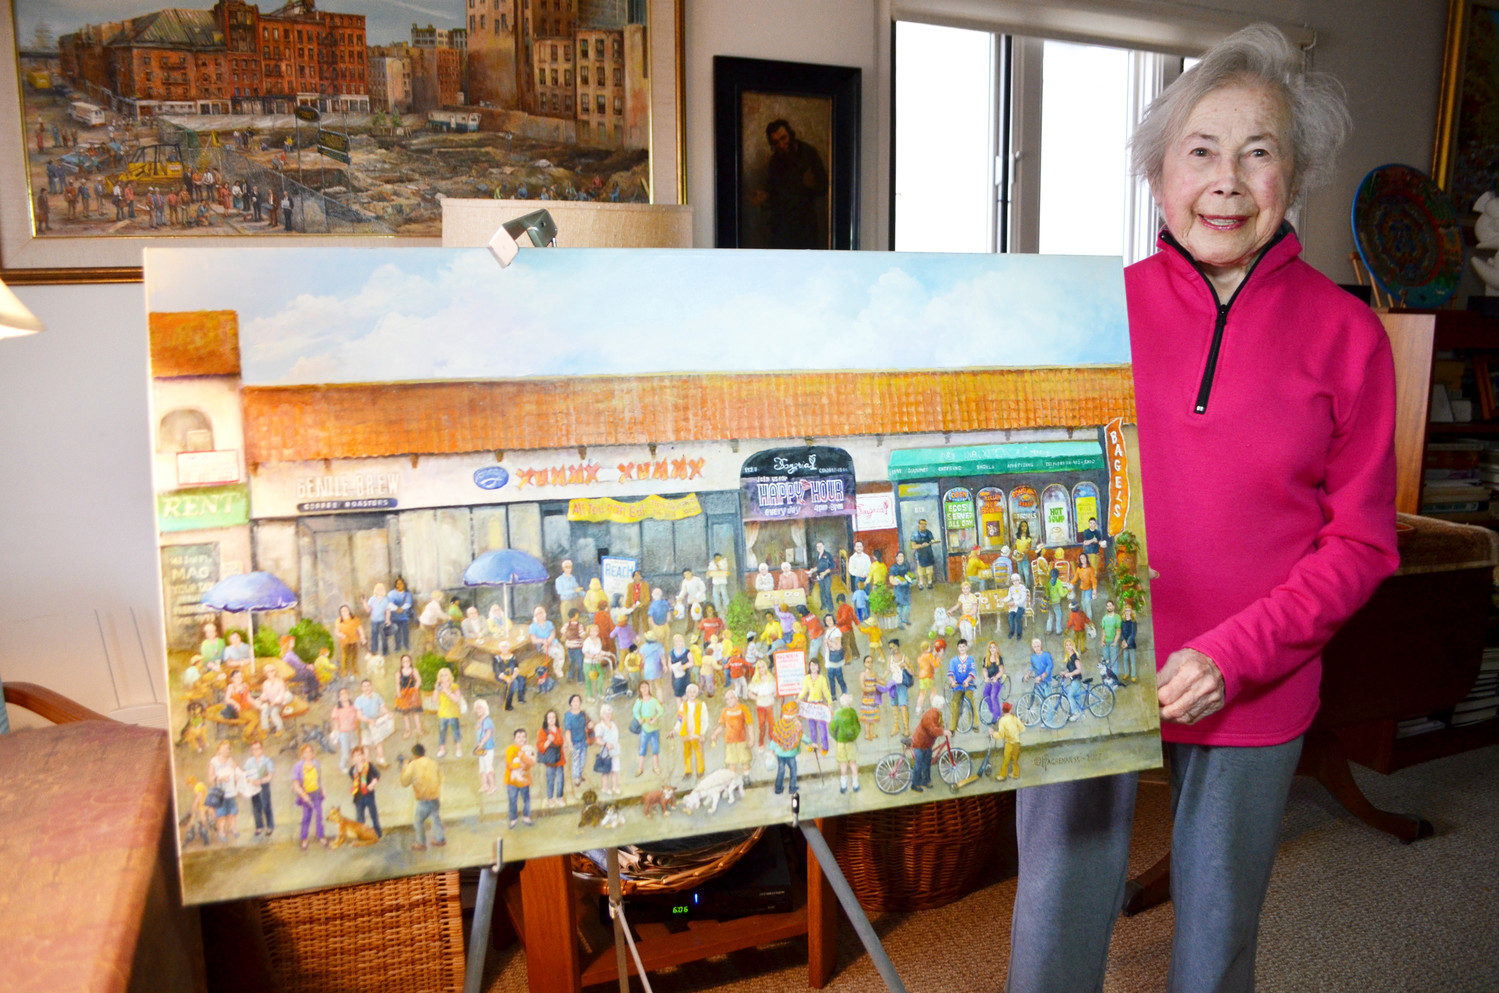 Hedy Pagremanski, a well-known artist who has lived in Long Beach for more than 30 years, recently finished a painting of 53 actual Long Beach residents on Park Avenue. She is known for painting scenes of New York City buildings before they were torn down.